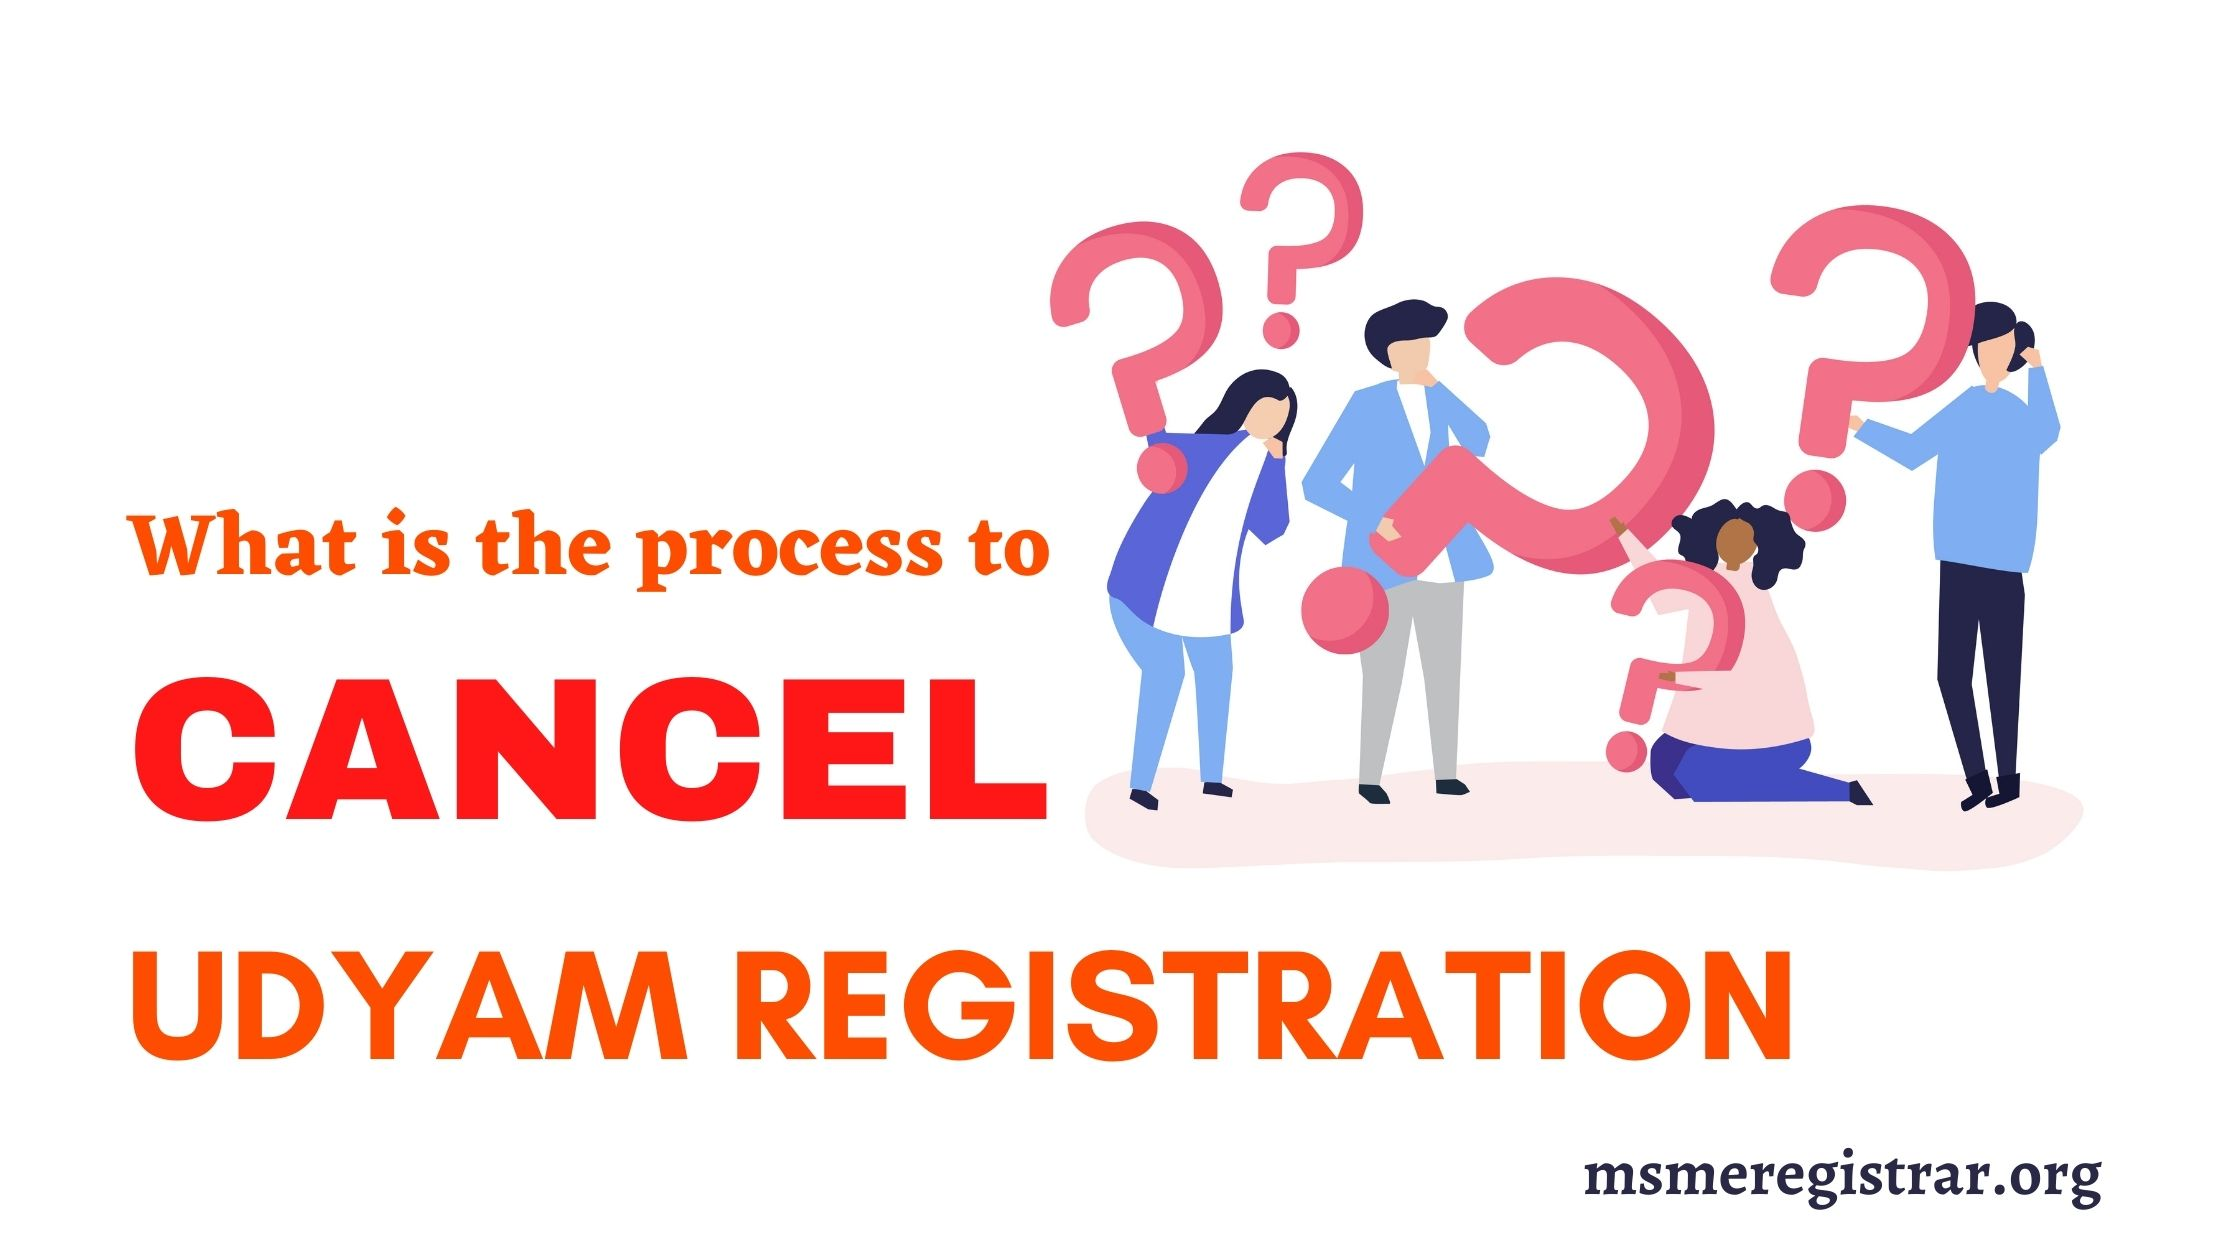 What is the process to Cancel Udyam Registration?